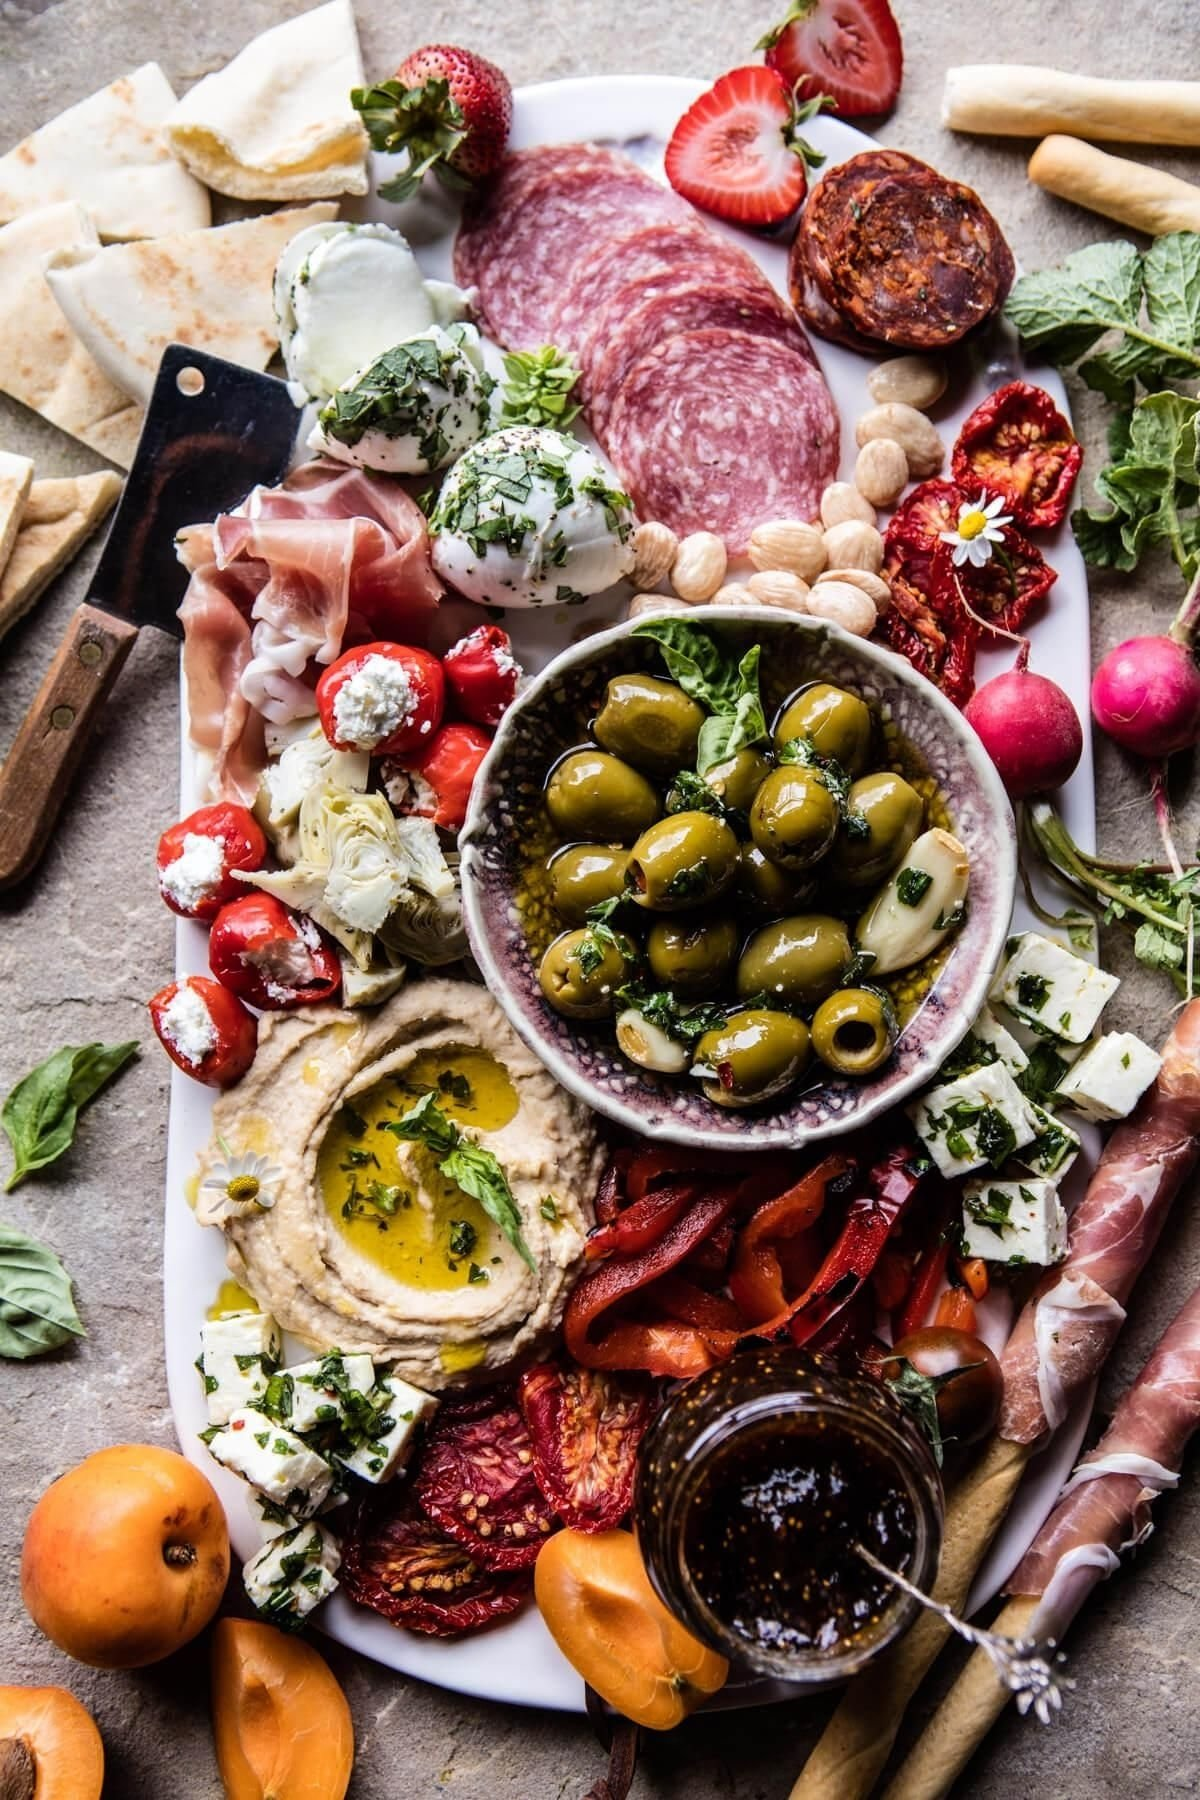 10 Unique Meat And Cheese Platter Ideas 20 charcuterie boards that are party goals charcuterie board 2021